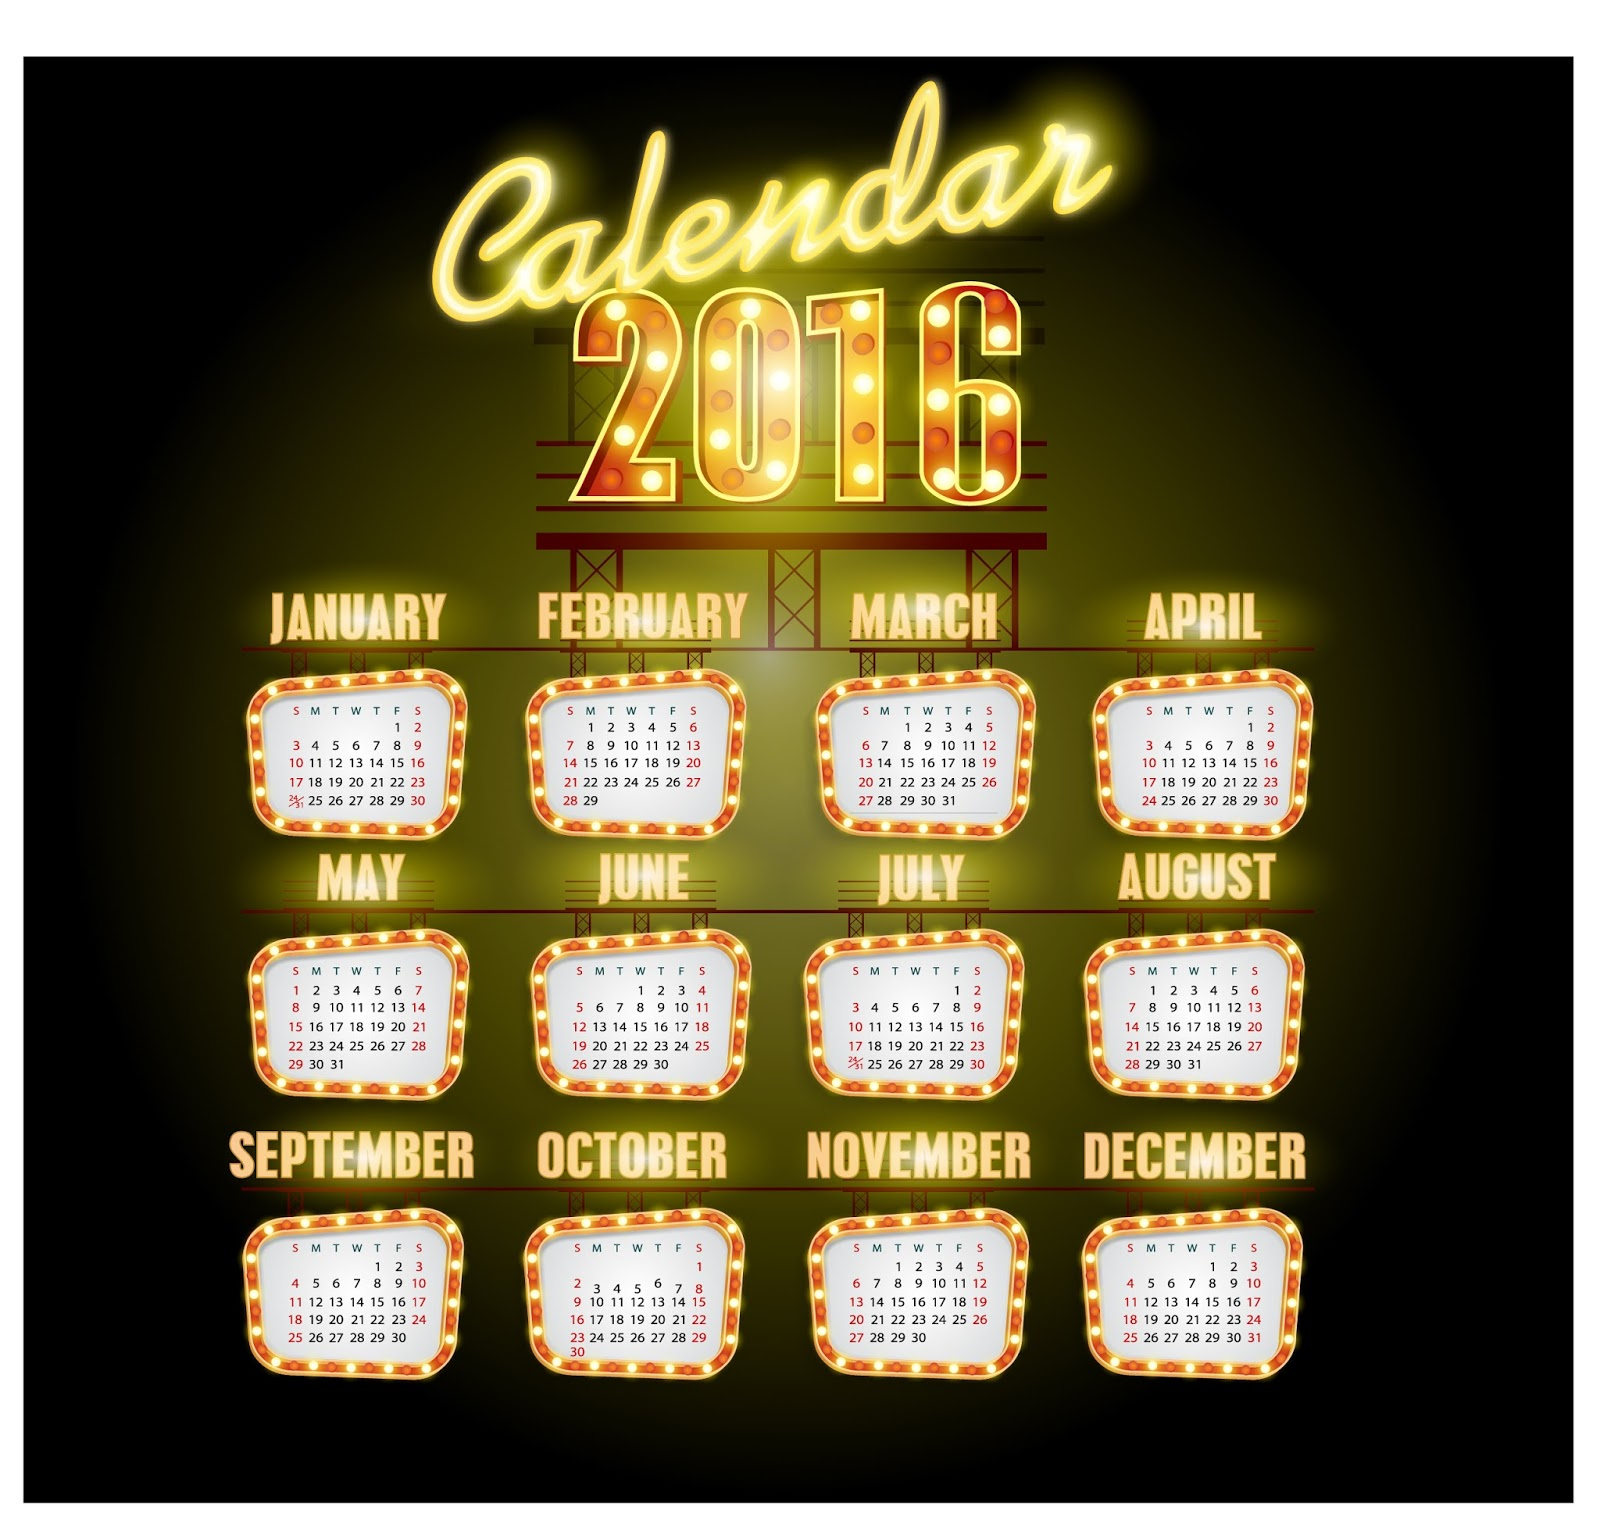 2016 calendar organizer template year monthly daily design week vector date day schedule time business graphic calender agenda month annual illustration january december april june march november july august february english calendario october